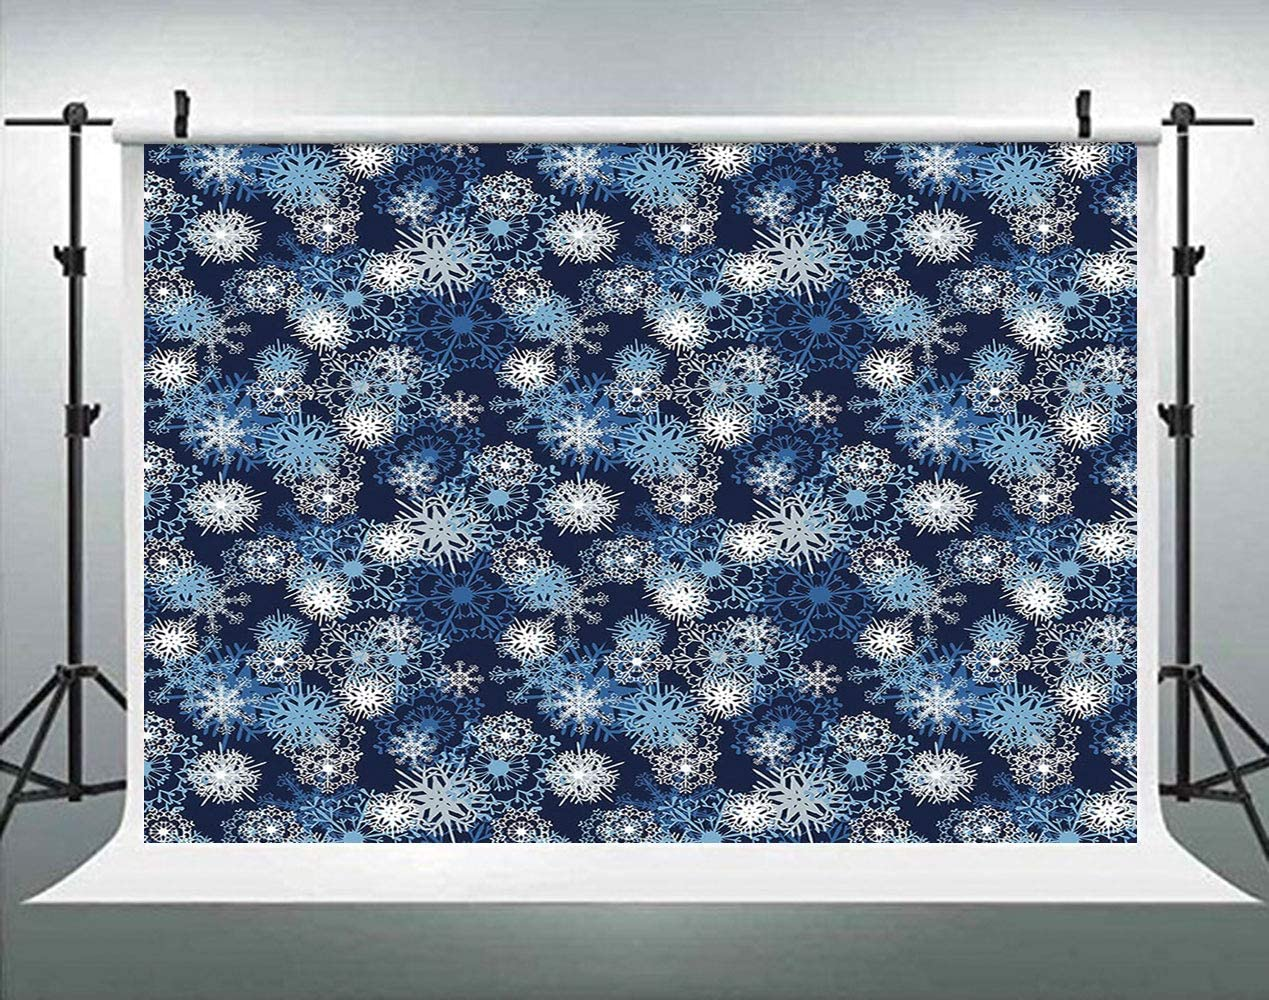 Snowboard and Ski Sports Pattern with Snowflakes Background Backdrop for Selfie Birthday Party Pictures Photo Dance Decor Wedding Studio Background AM034131 ALUONI 5x3ft Winter